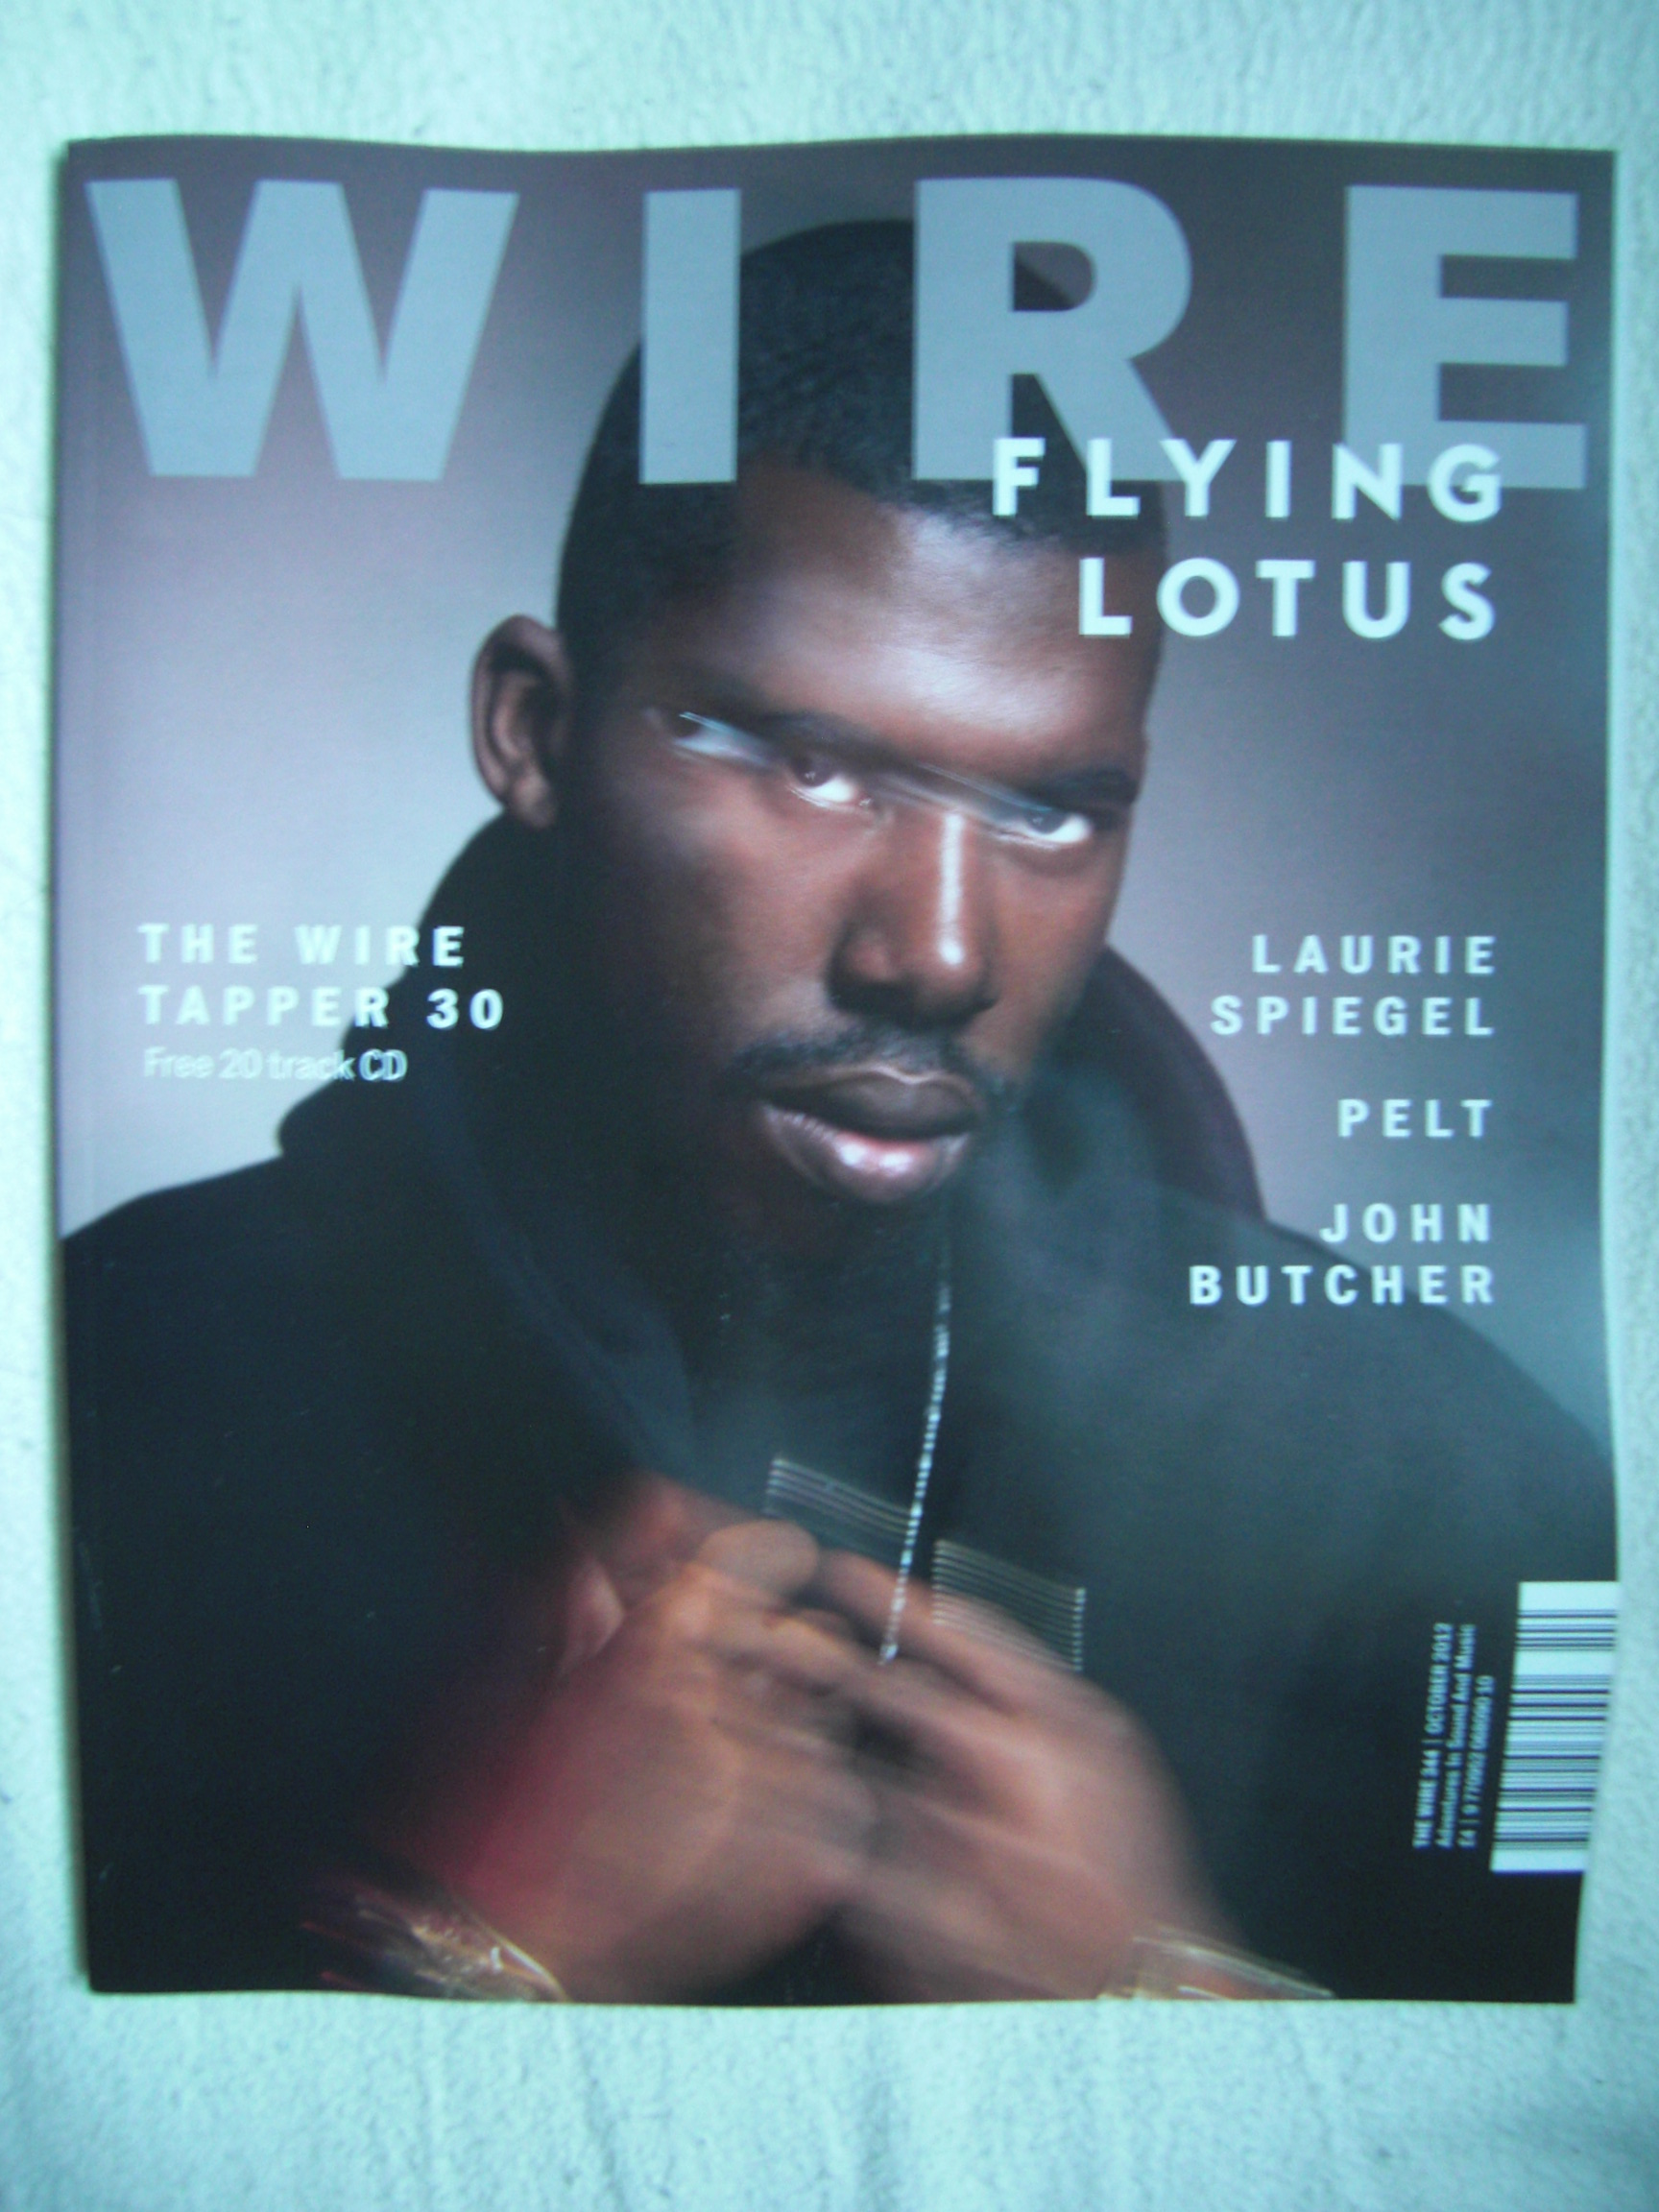 THE WIRE october 2012